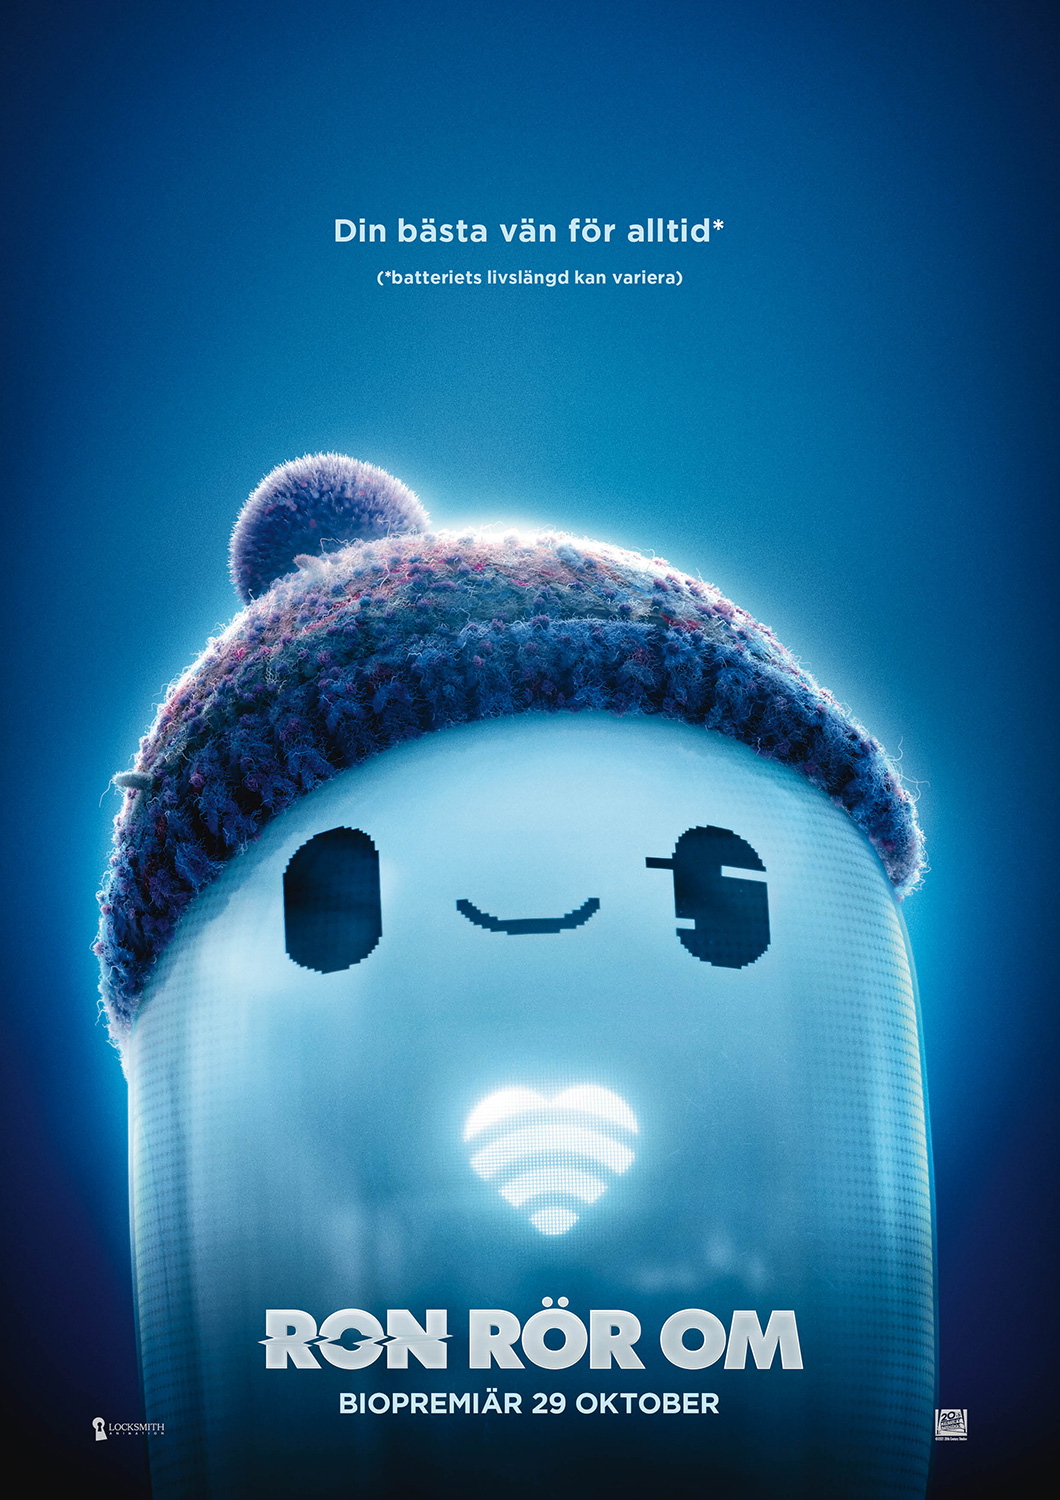 You are currently viewing Ron rör om